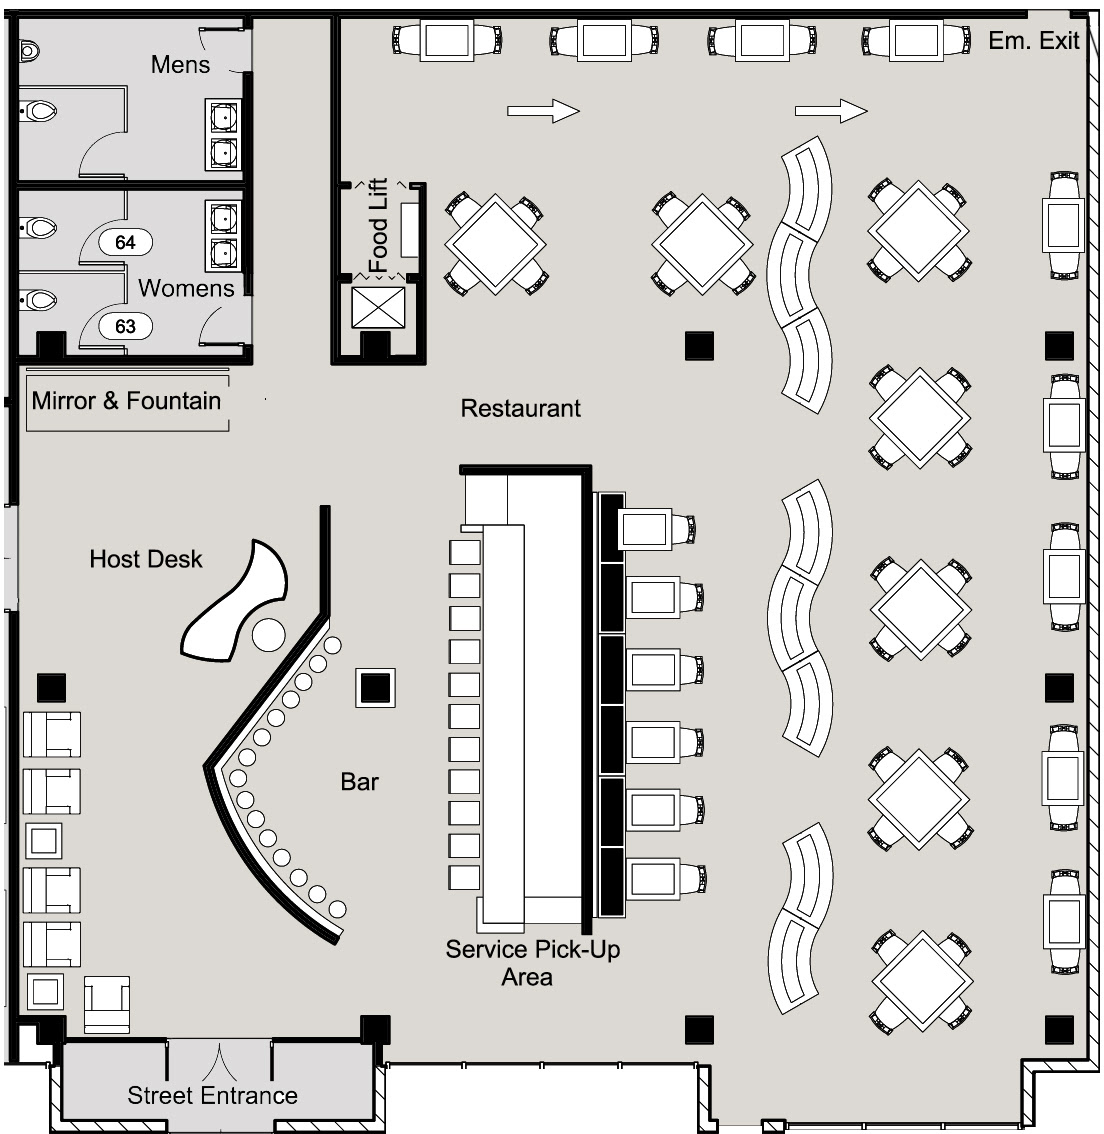 Architectural Floor / Space Plans by Jack Patterson at Coroflot.